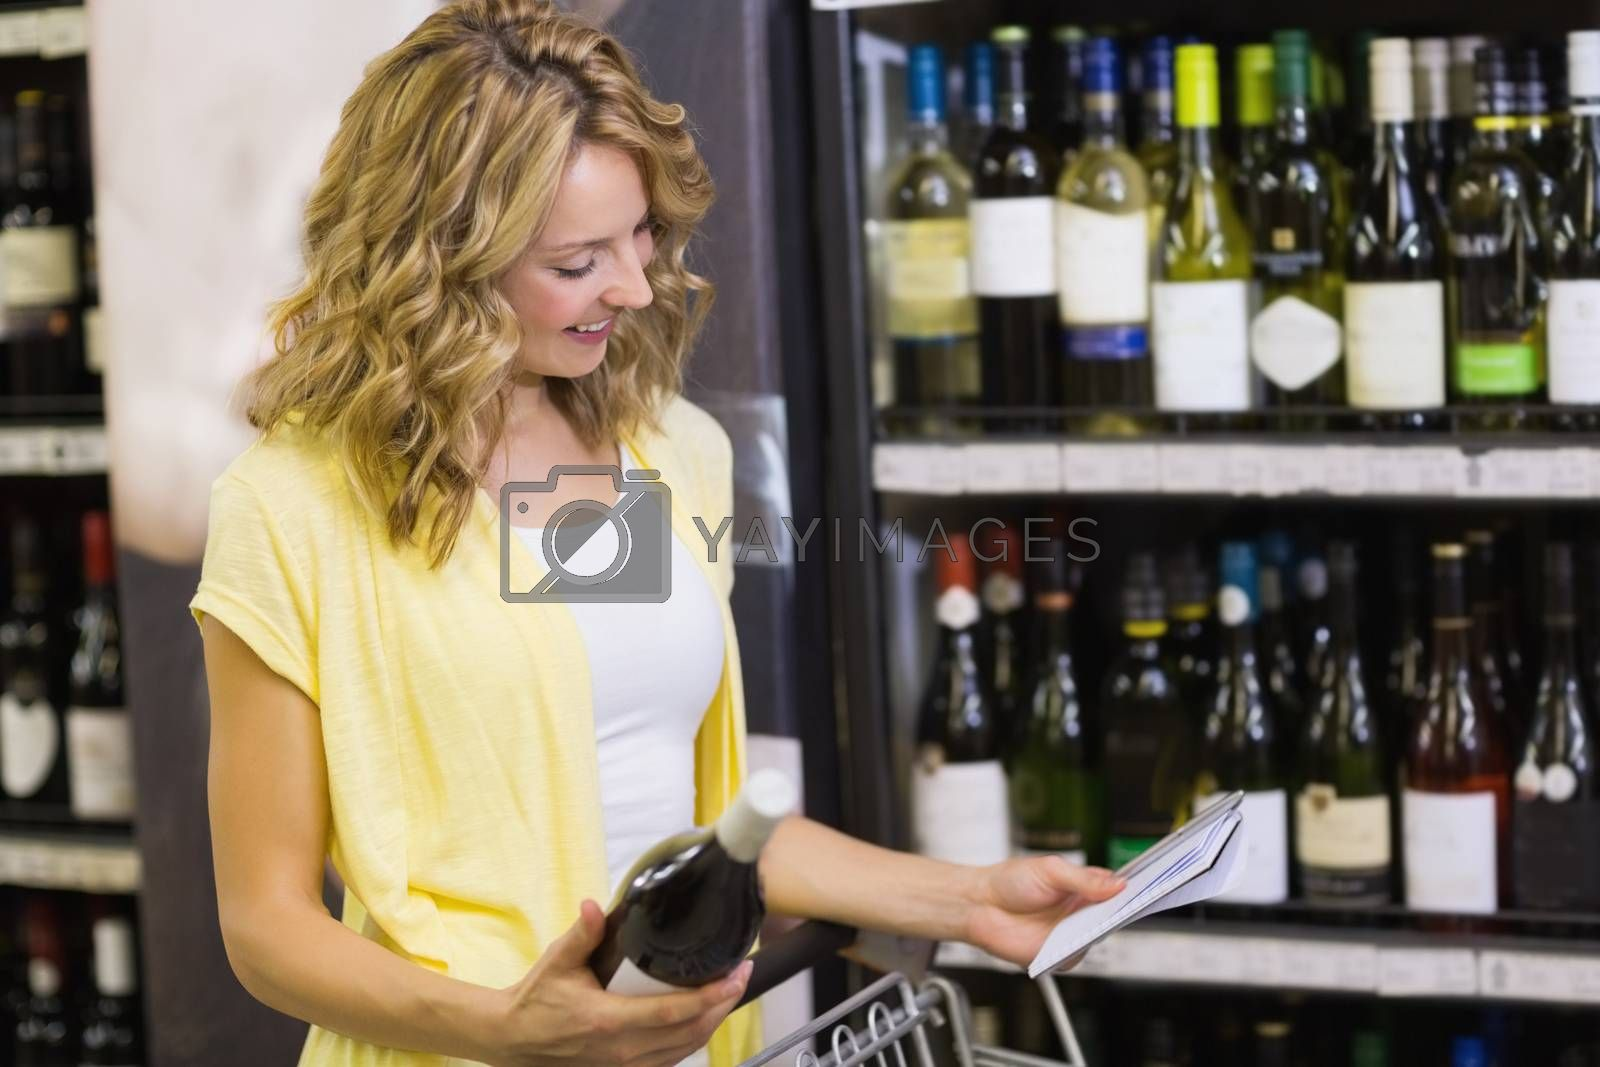 Royalty free image of Smiling pretty blonde woman looking at notepad and having in her hands a wine bottle  by Wavebreakmedia